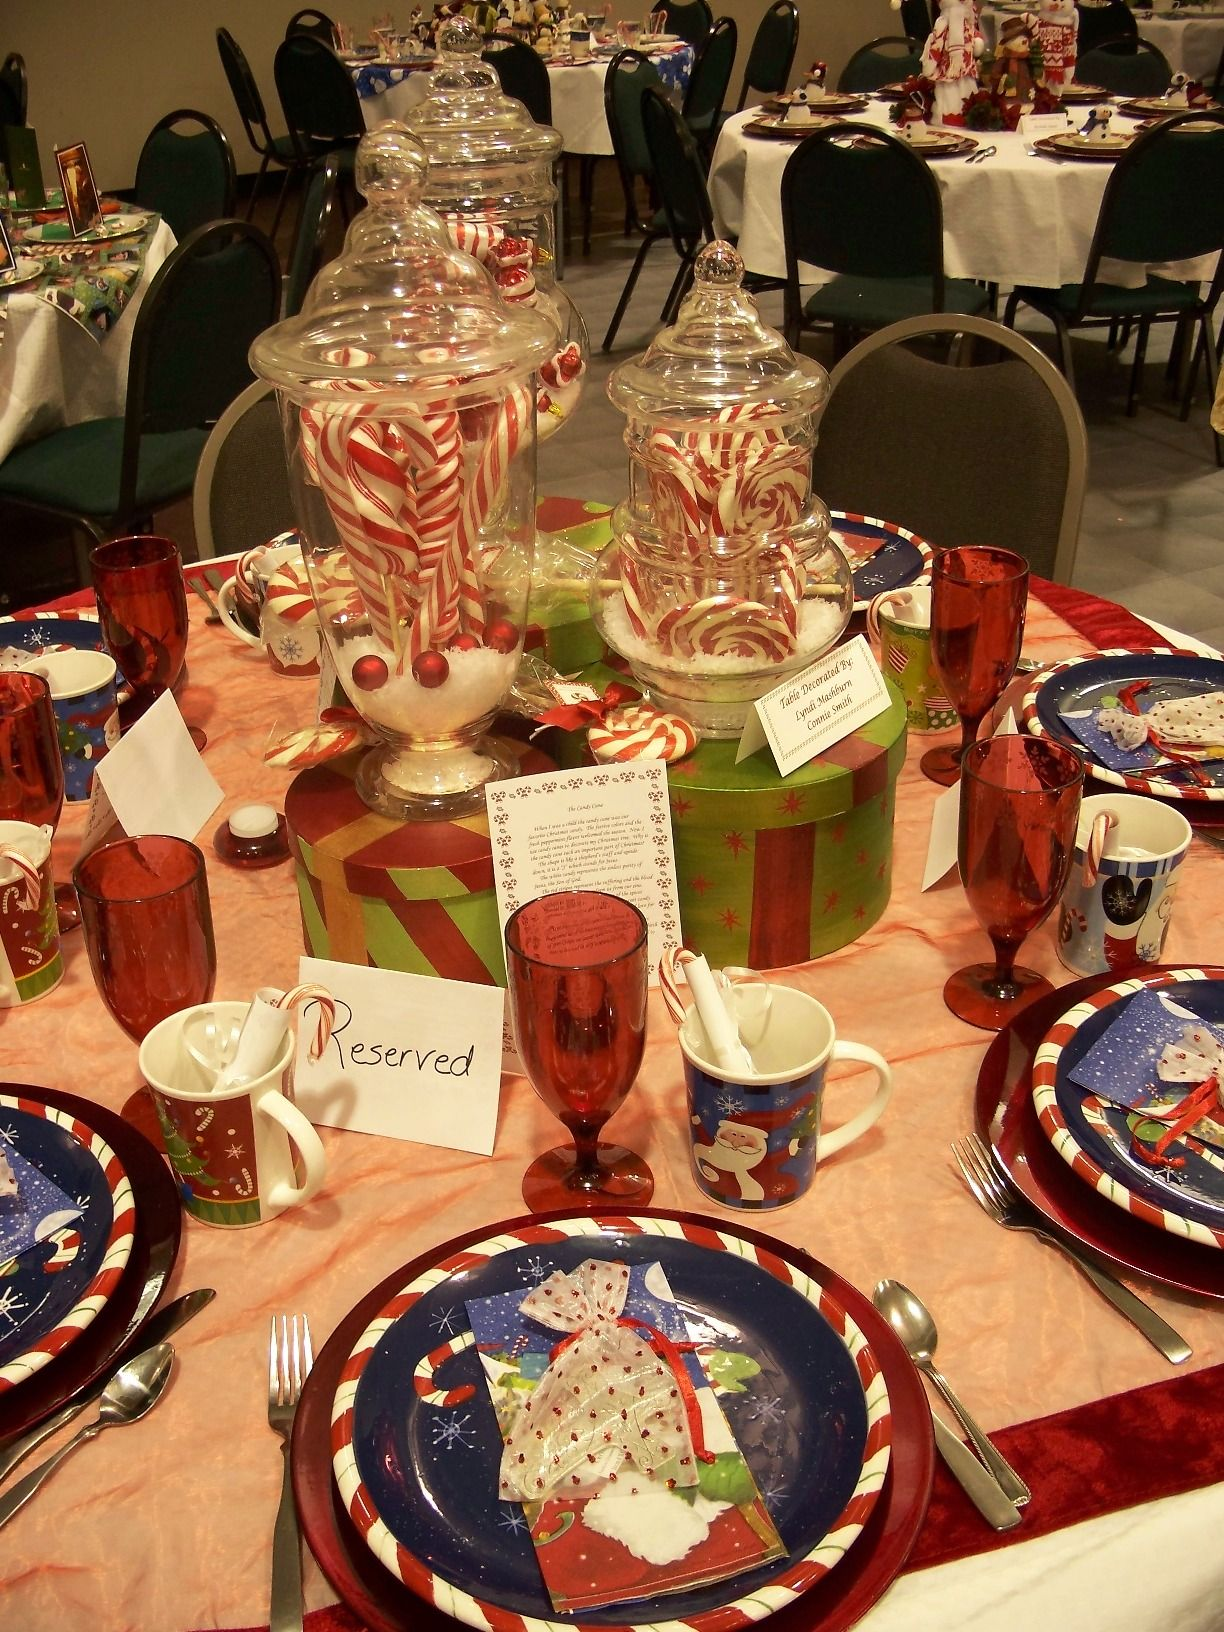 Picnic Table Decoration Ideas - Christmas & Winter Table Decorating